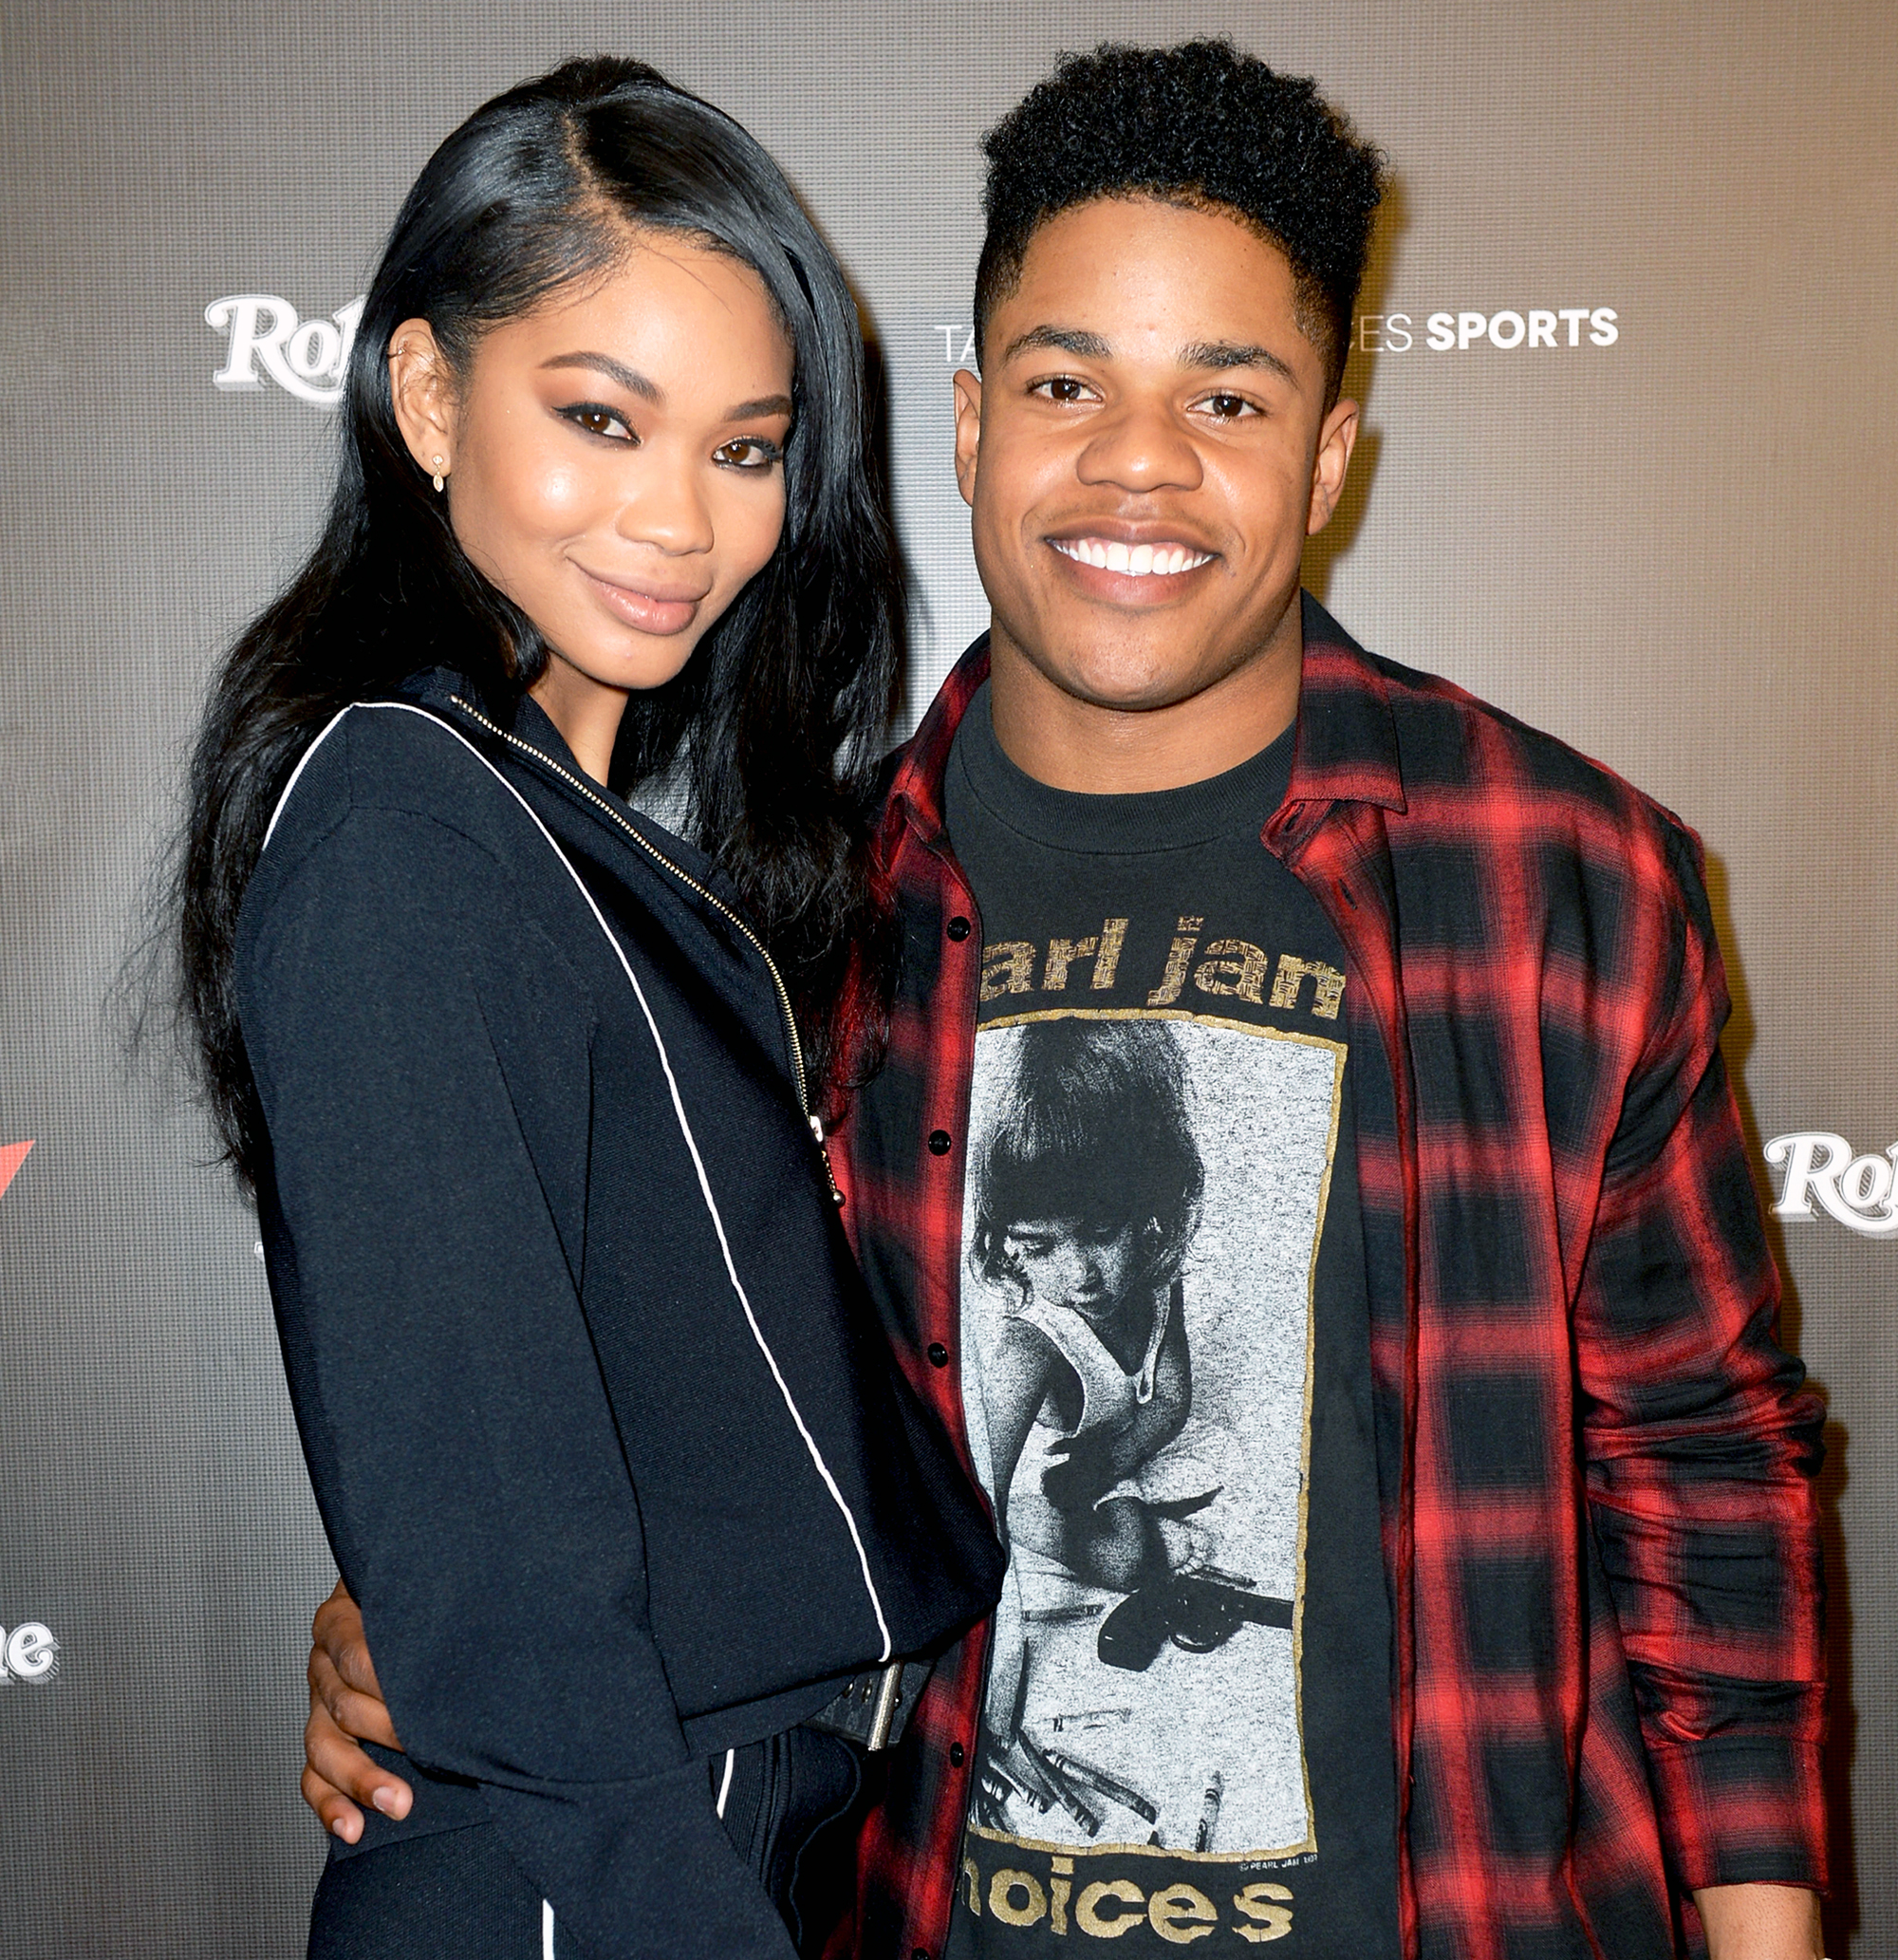 Chanel Iman expecting first child: 'Can't wait to meet you'